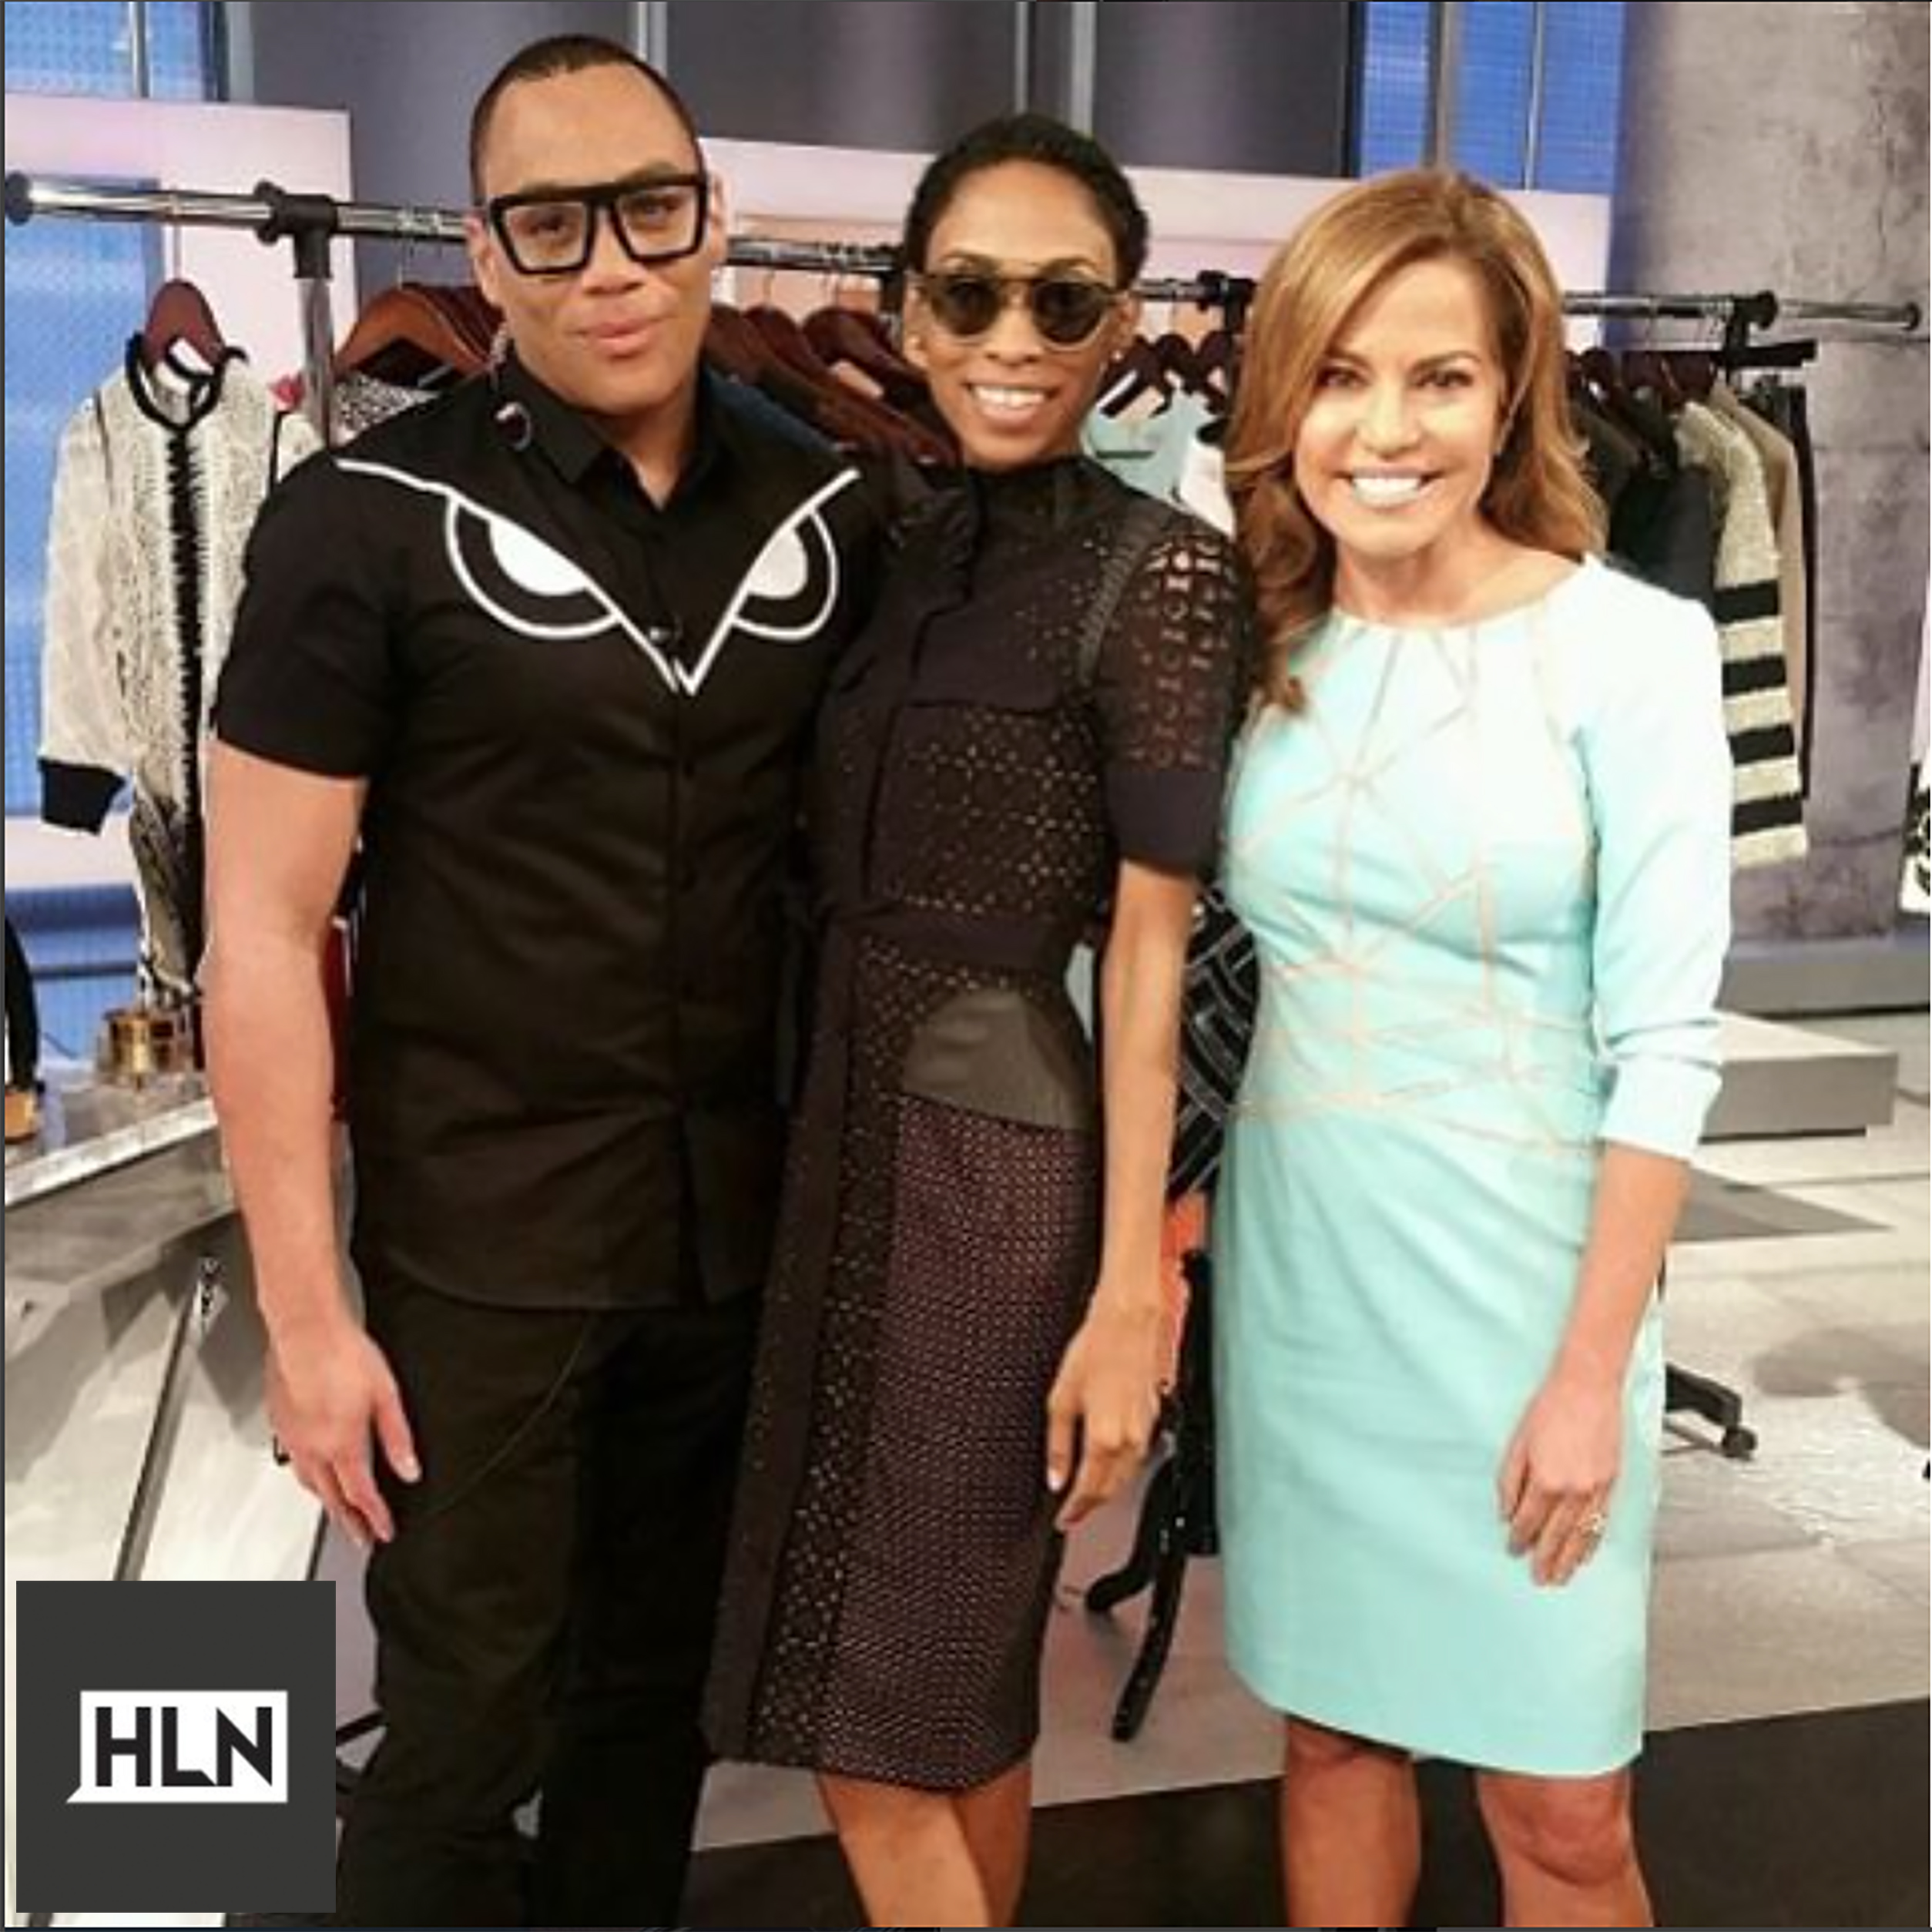 Established Eyewear on HLN